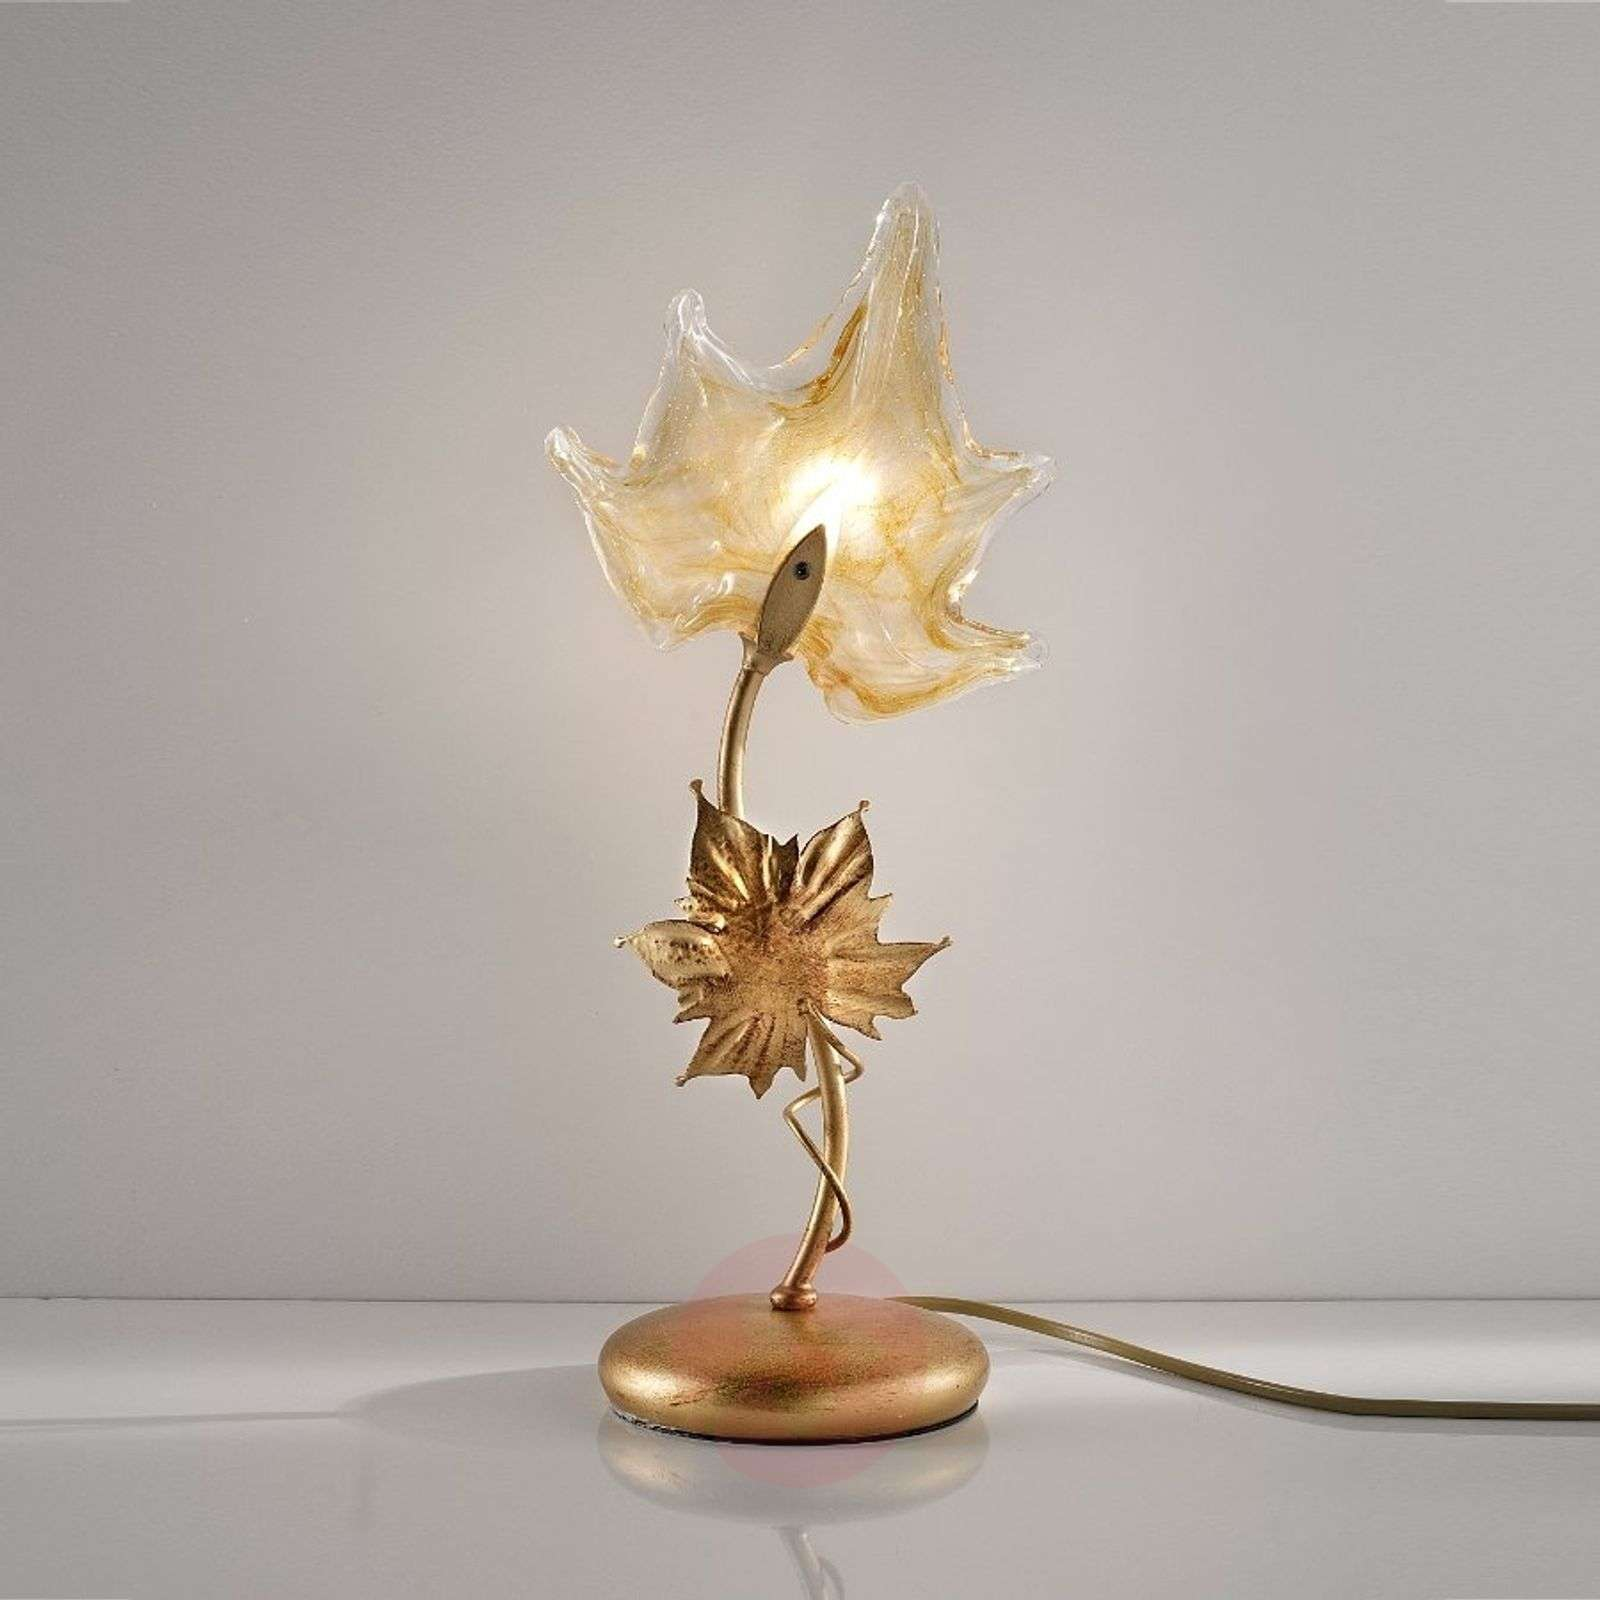 Murano glass table lamp elite lights murano glass table lamp elite 1548035 01 aloadofball Gallery